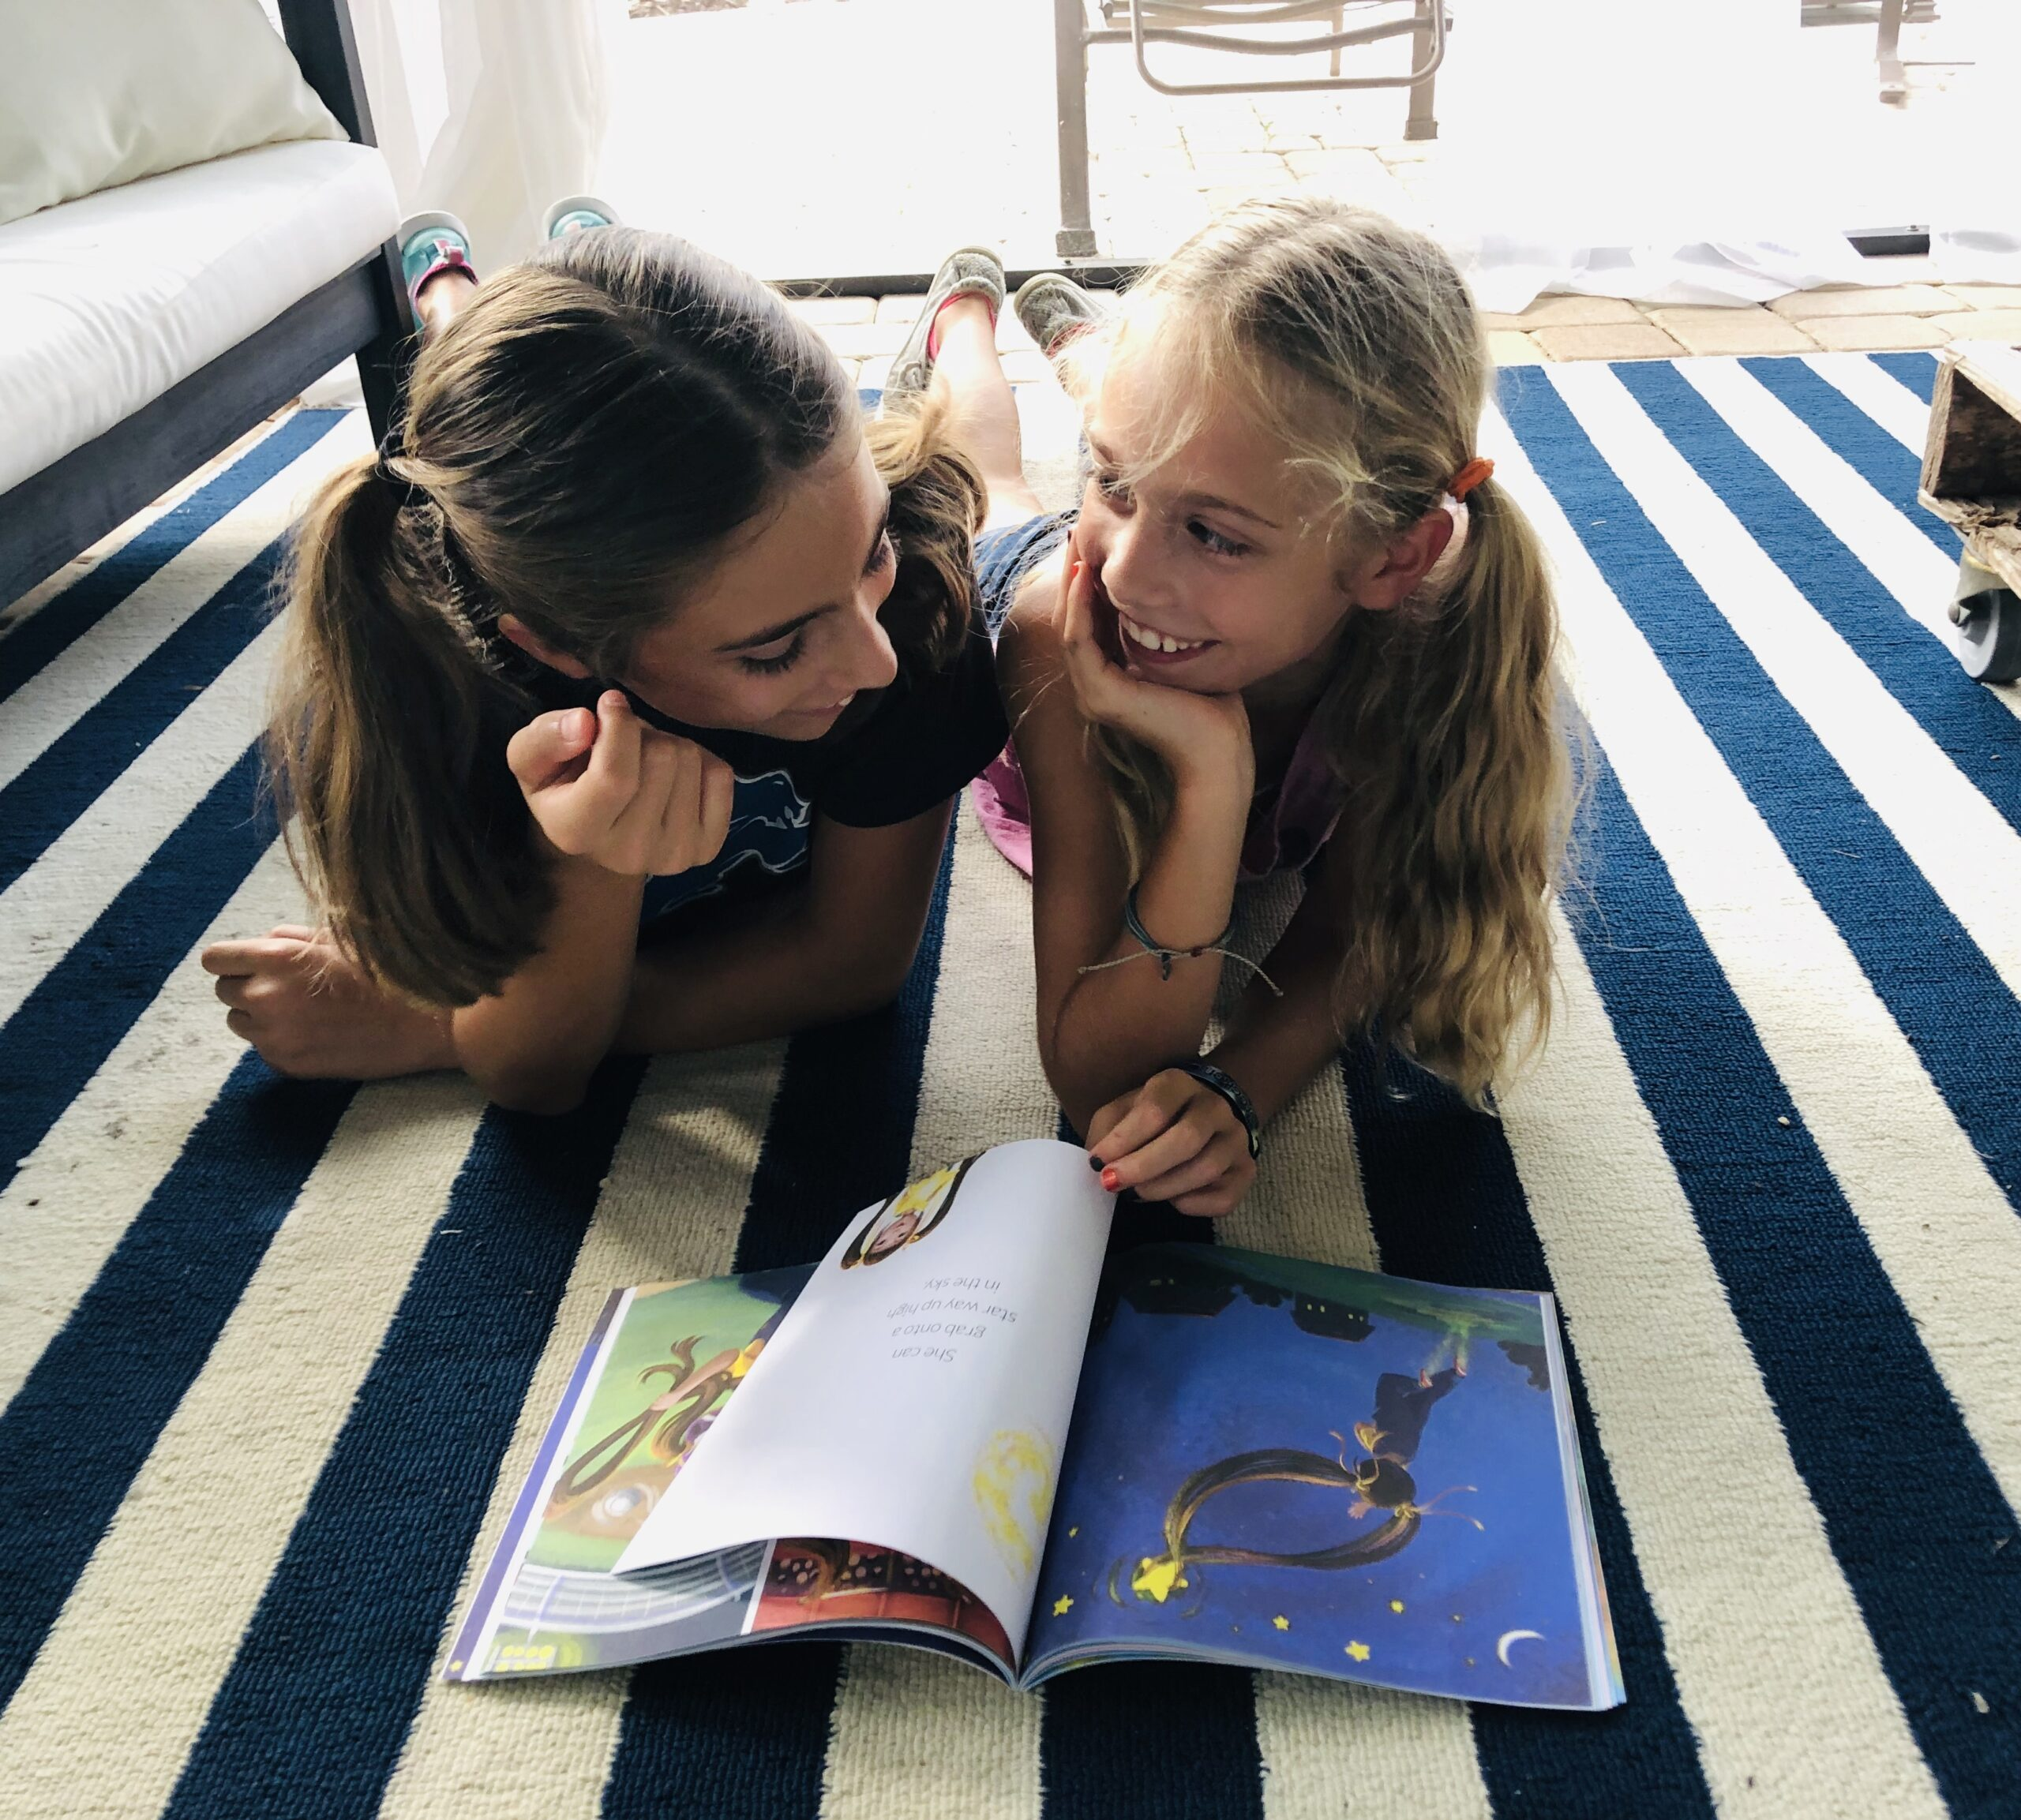 2 girls reading a book, smiling.